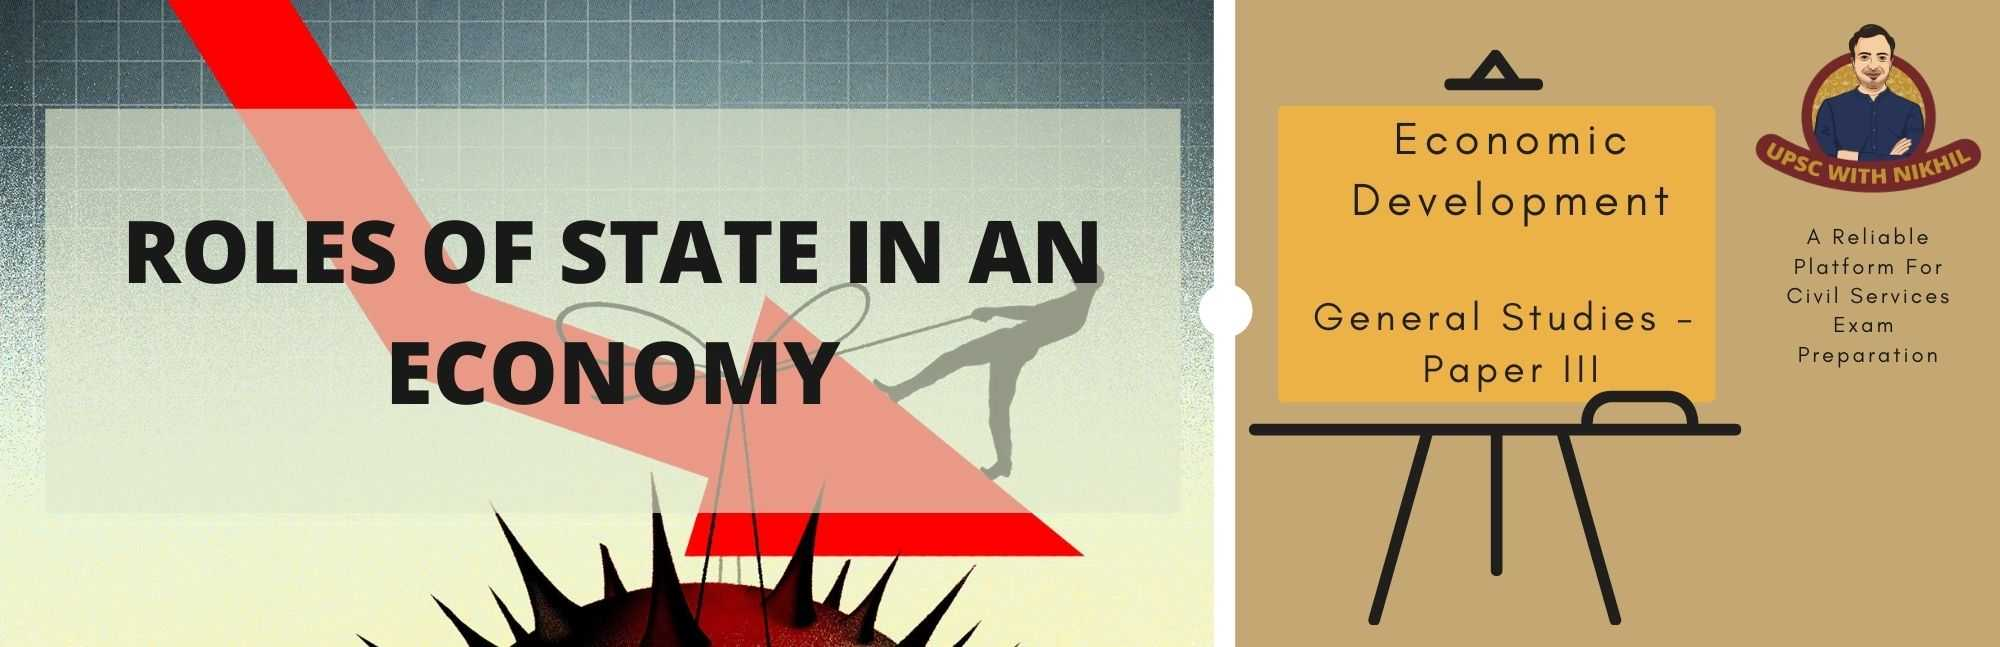 Roles of State in an Economy